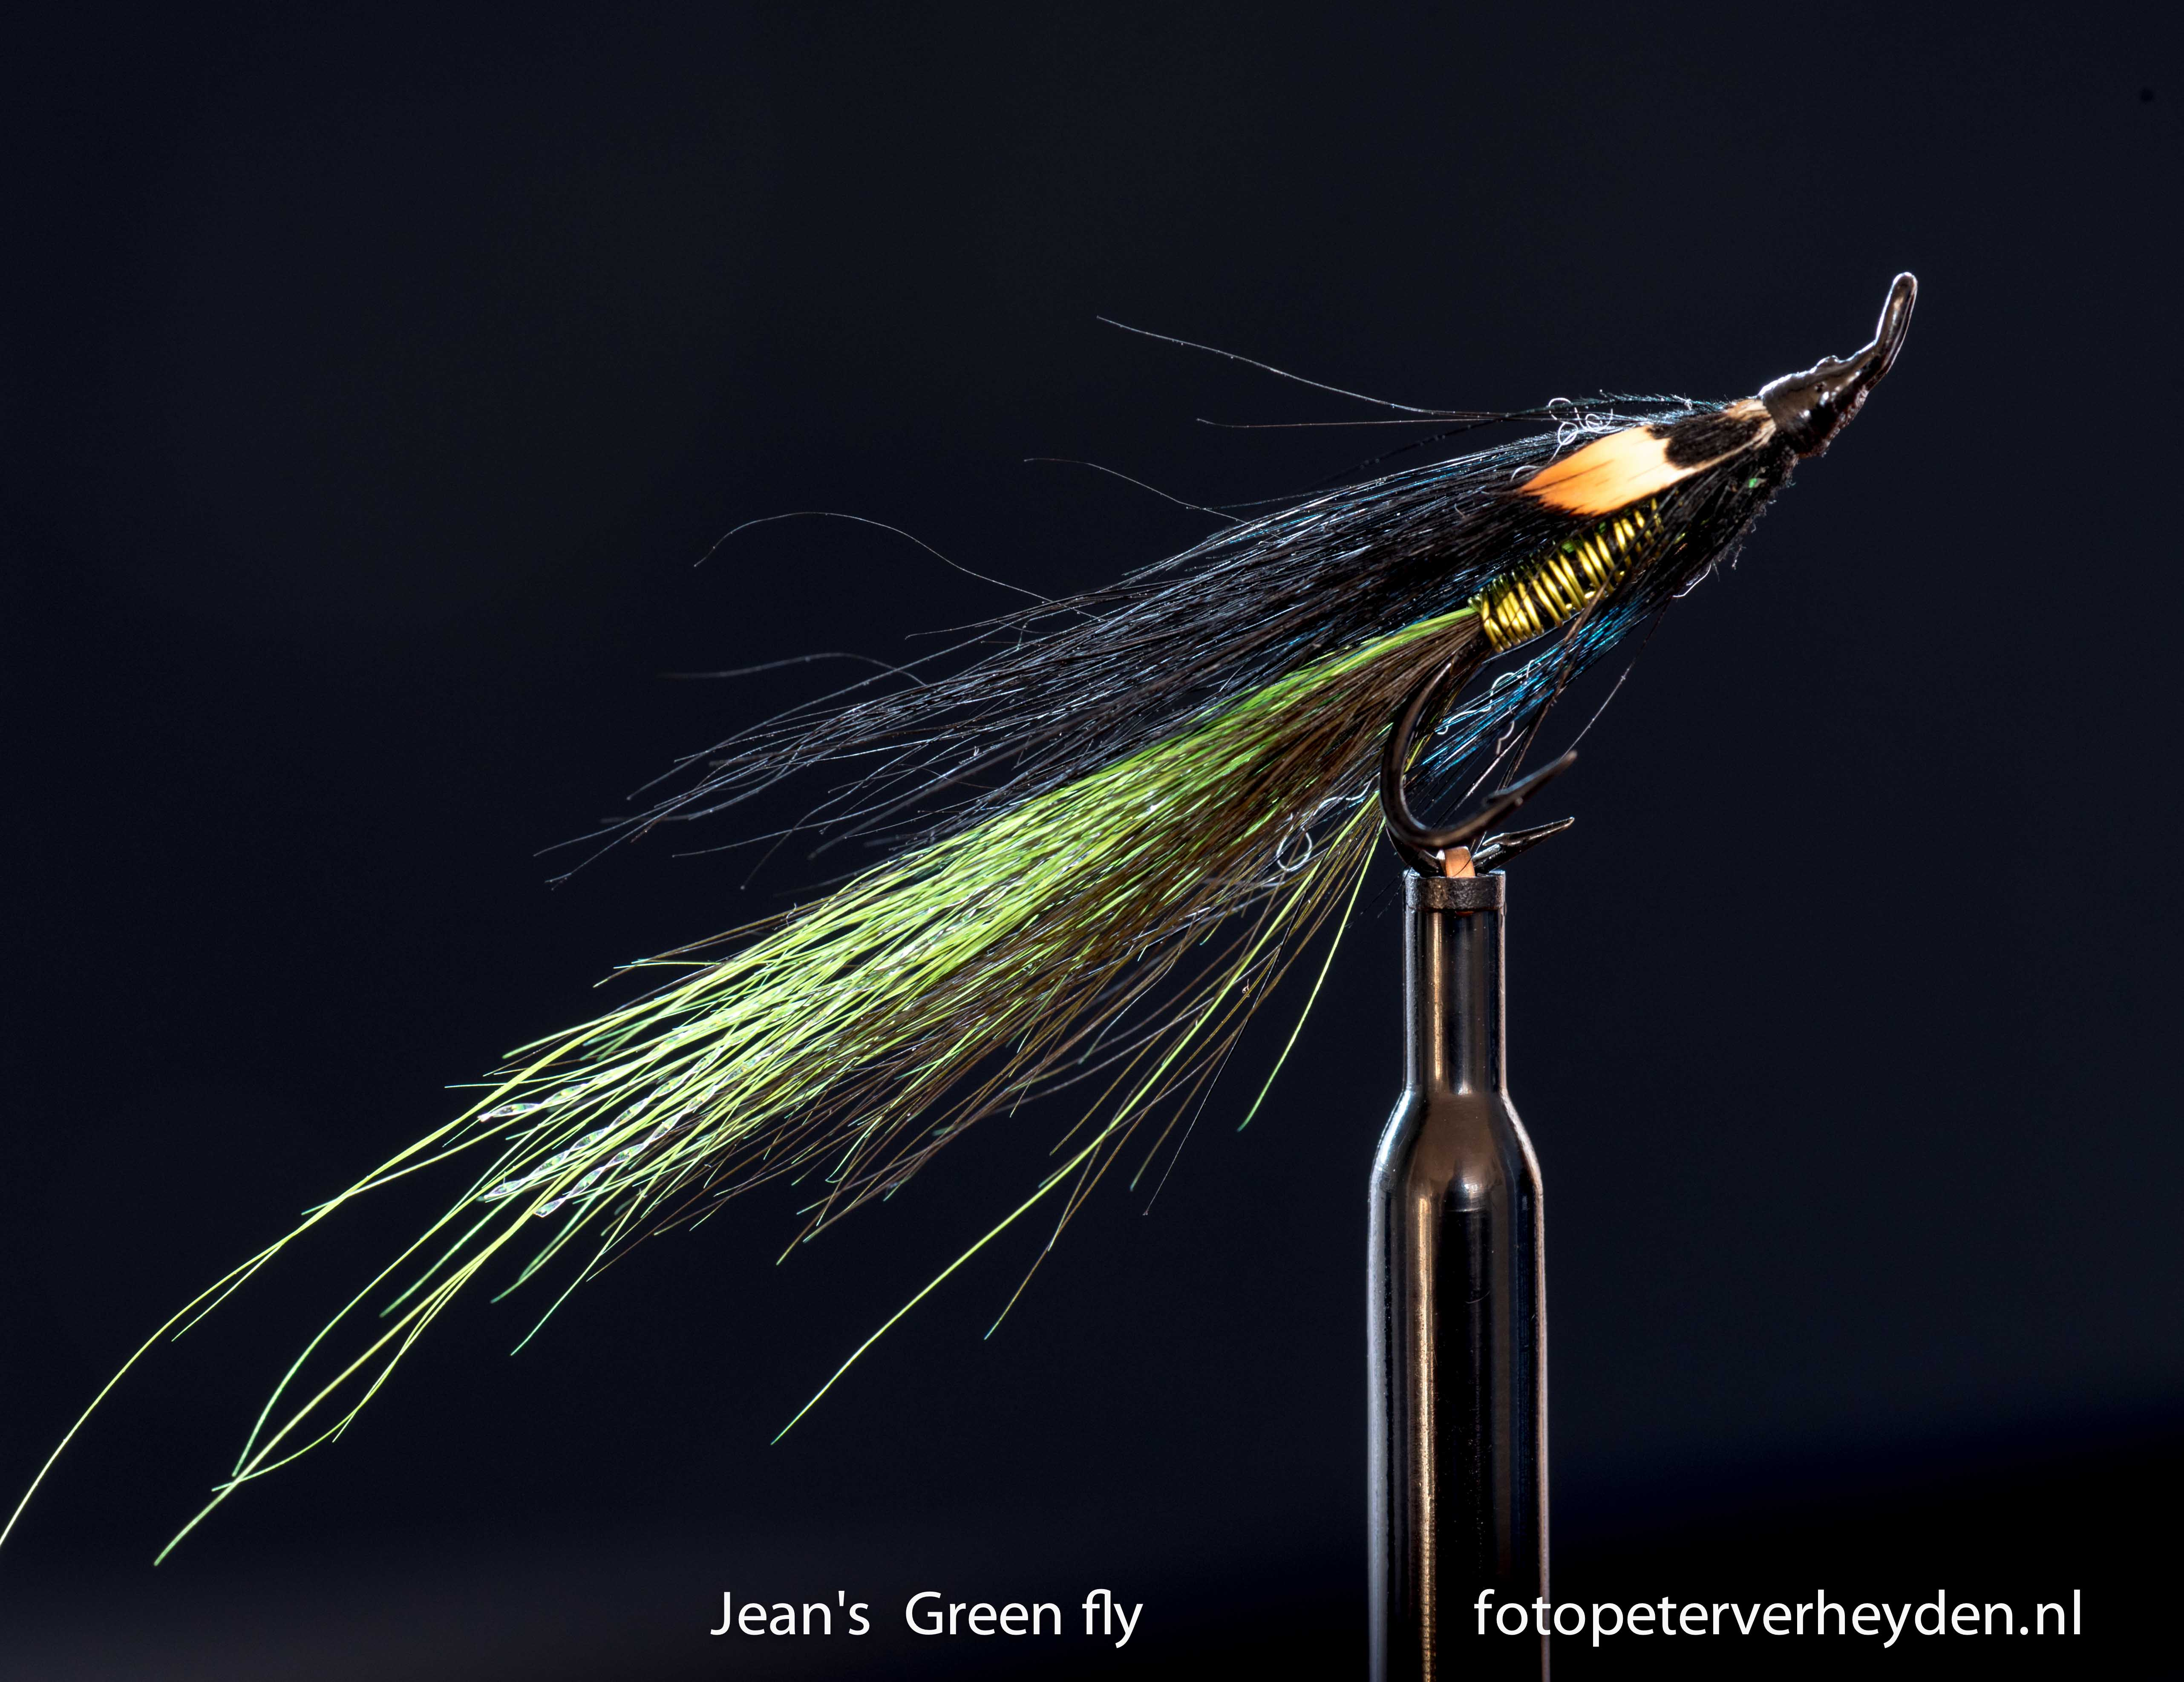 Jeans green fly